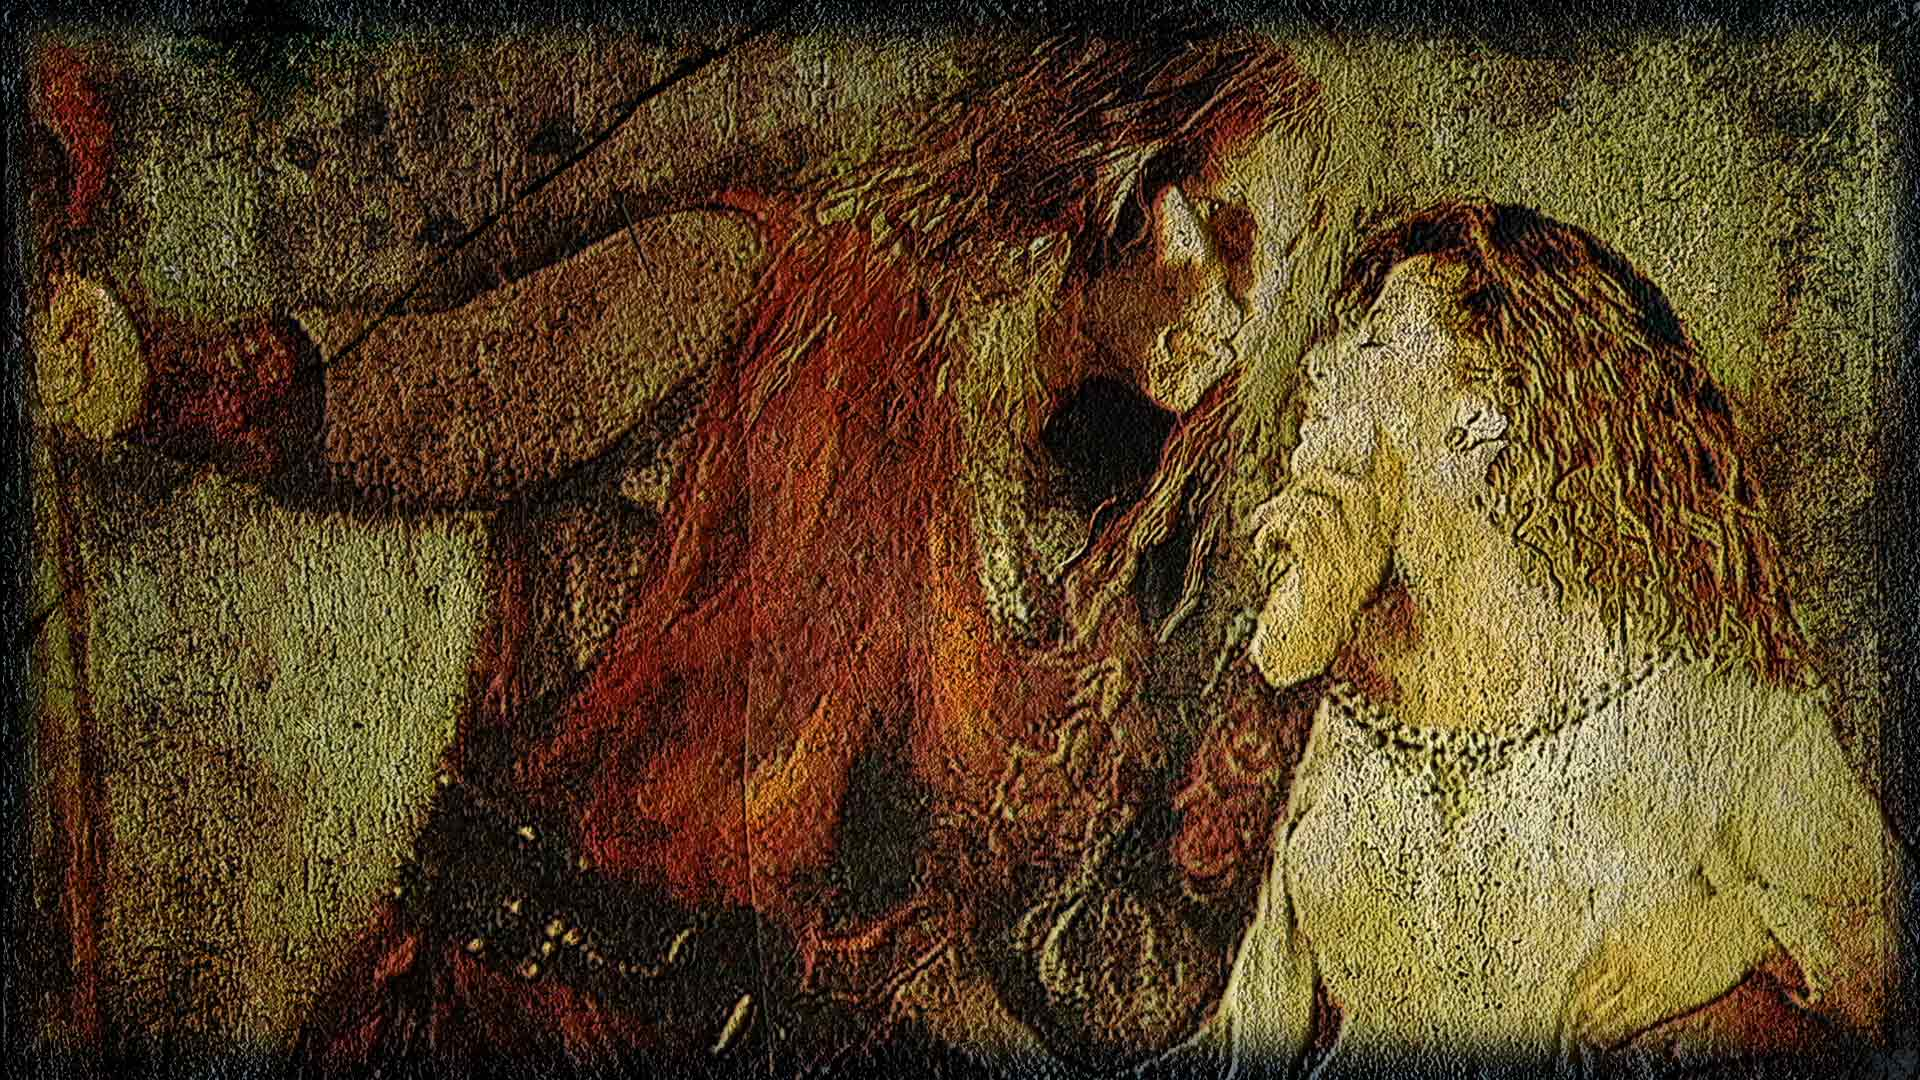 Vincent and Catherine as knight and lady, Vincent cupping Catherine's chin in a near-kiss